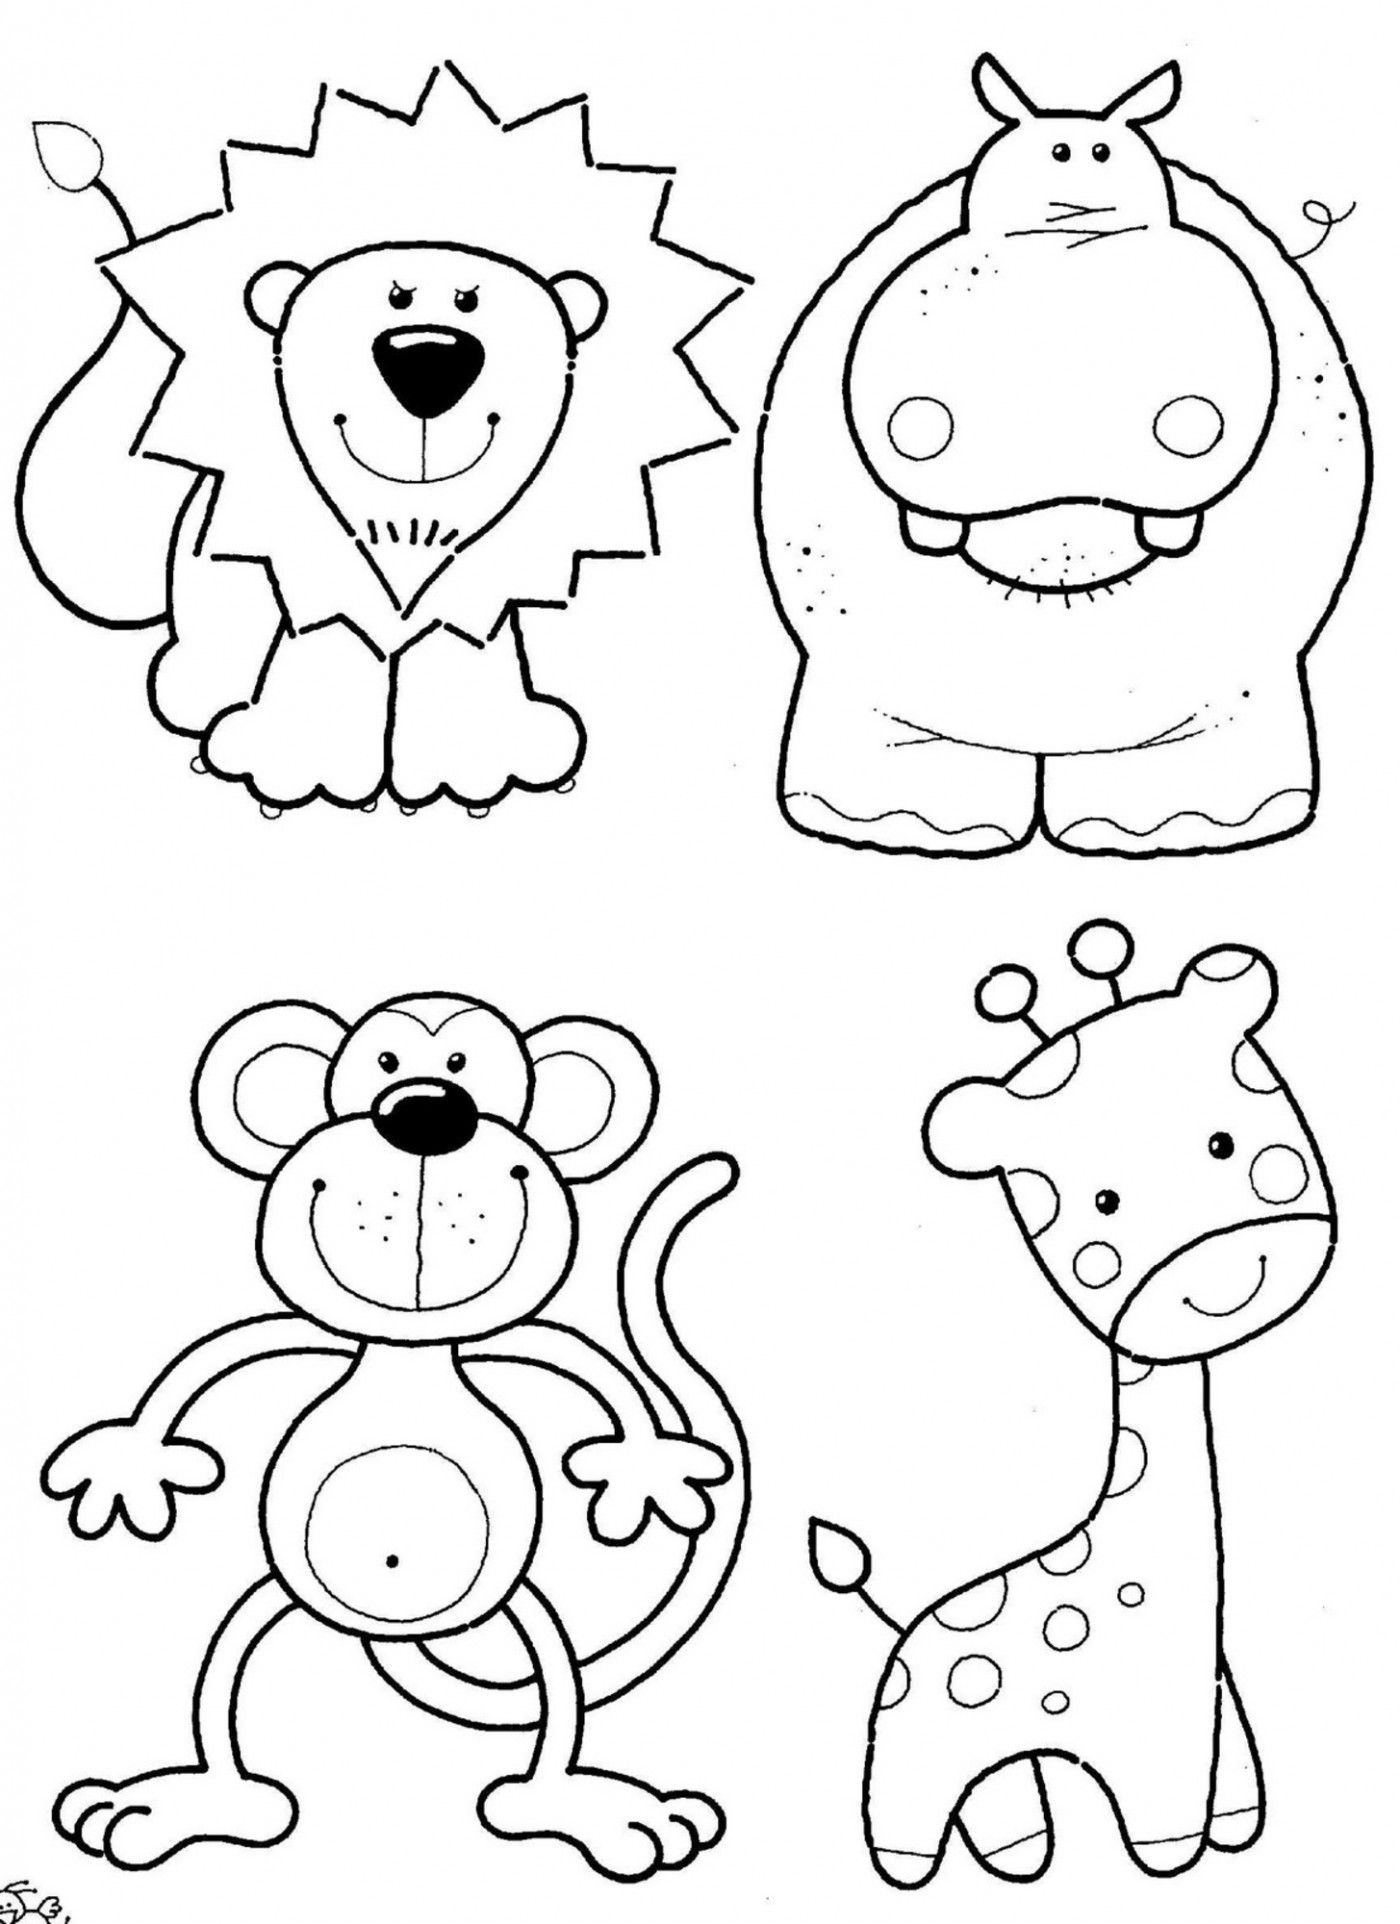 Animal Coloring Pages Zoo Animal Coloring Pages Farm Animal Coloring Pages Animal Coloring Pages